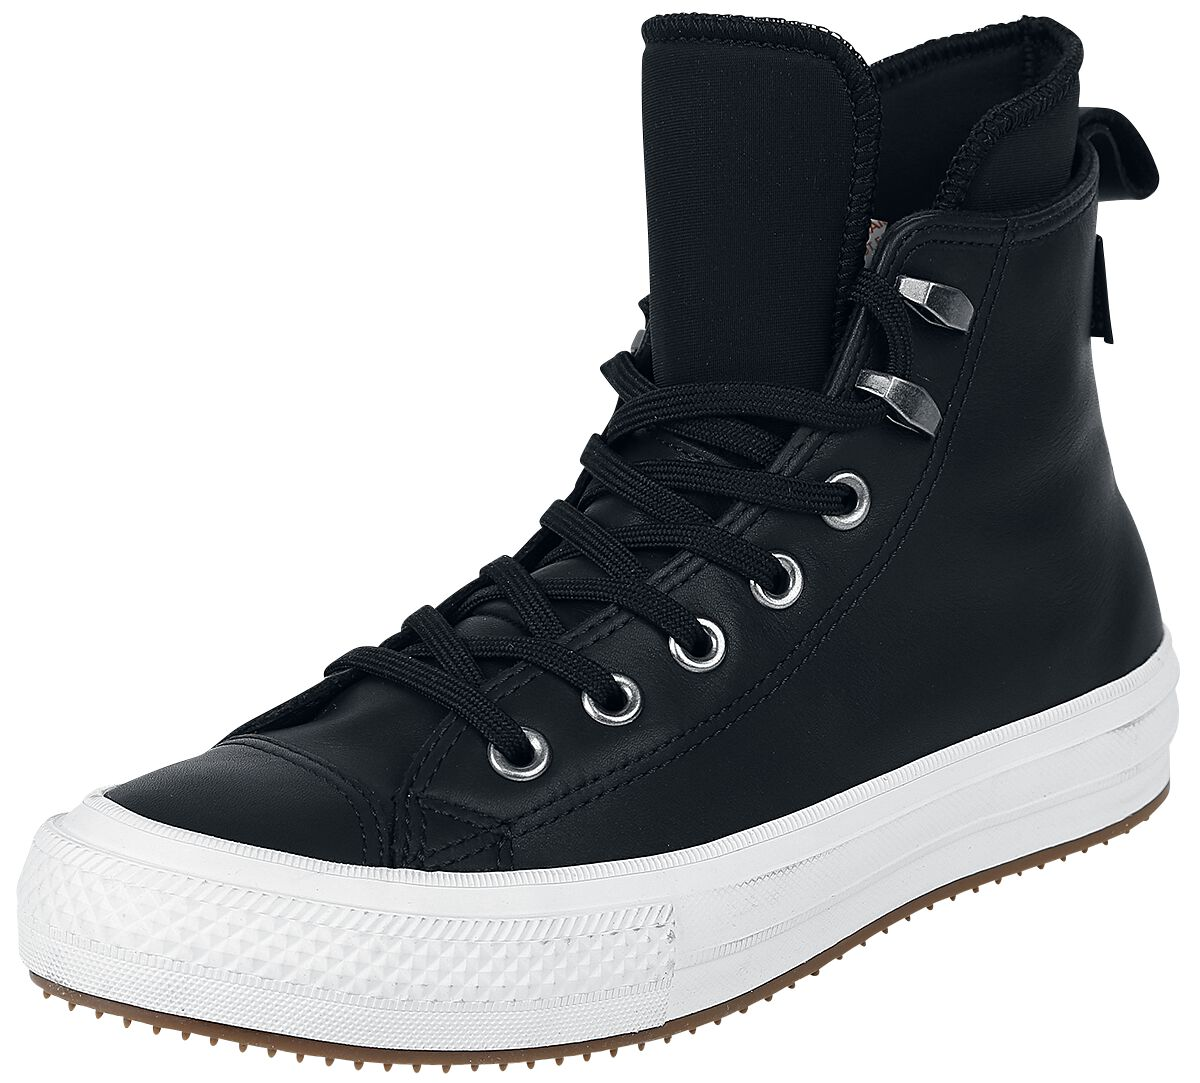 Image of   Converse Chuck Taylor All Star WP Boot Støvler sort